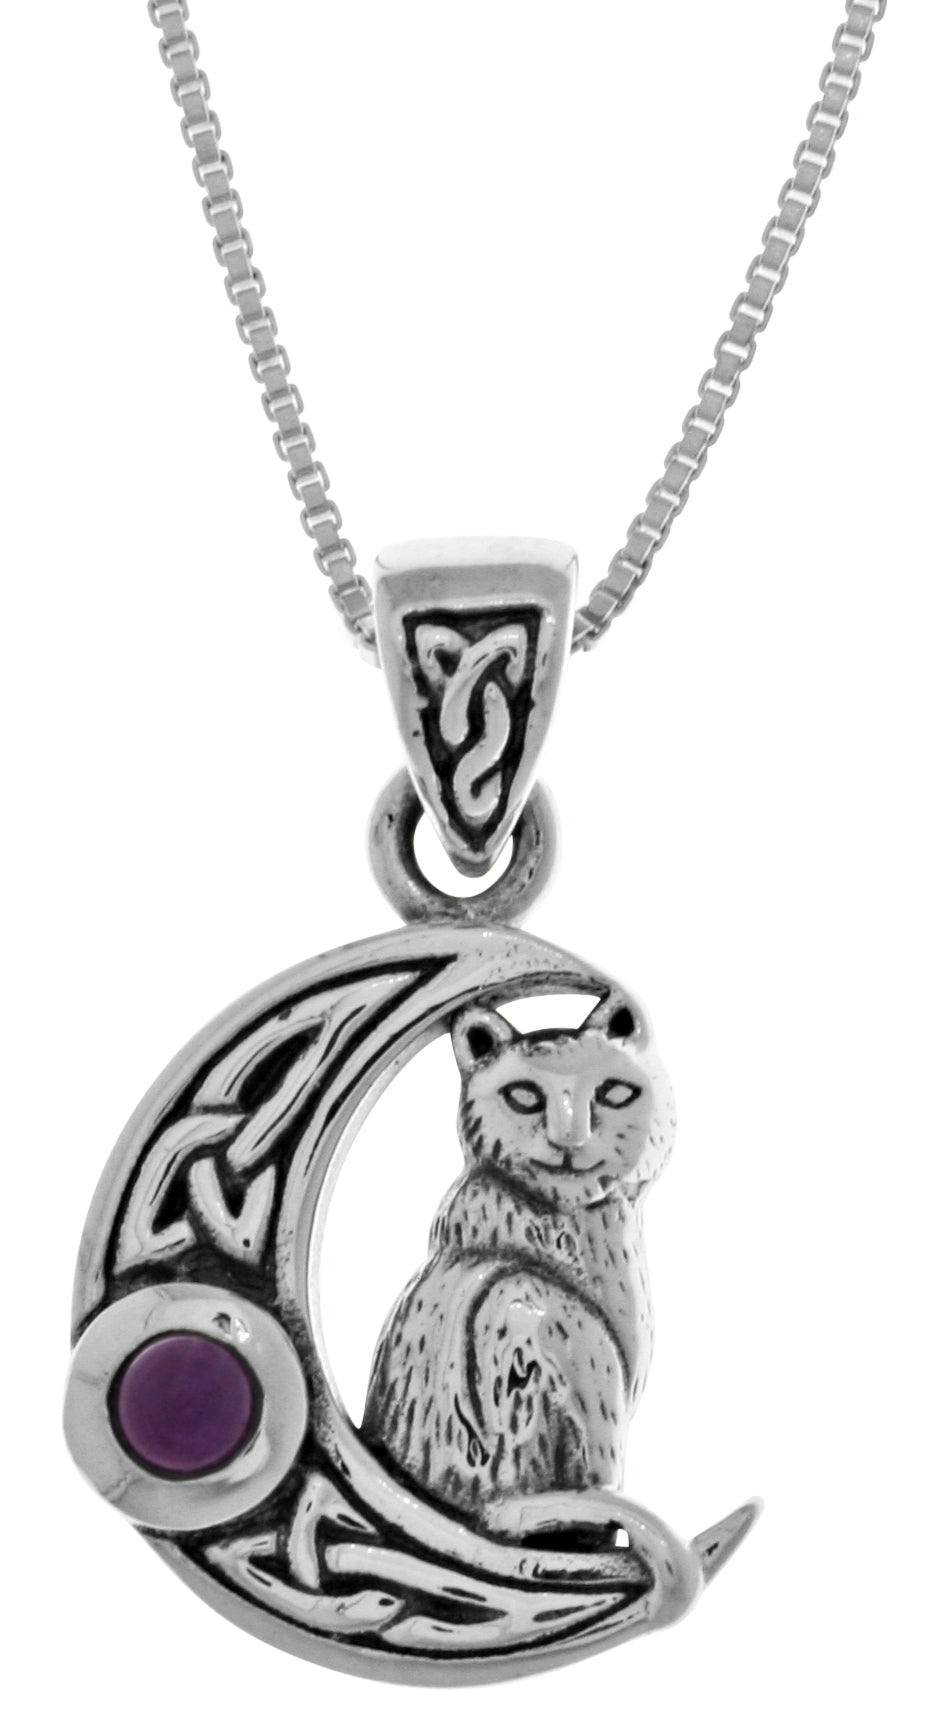 Jewelry Trends Sterling Silver Dragon with Celtic Crescent Moon Pendant Necklace 18